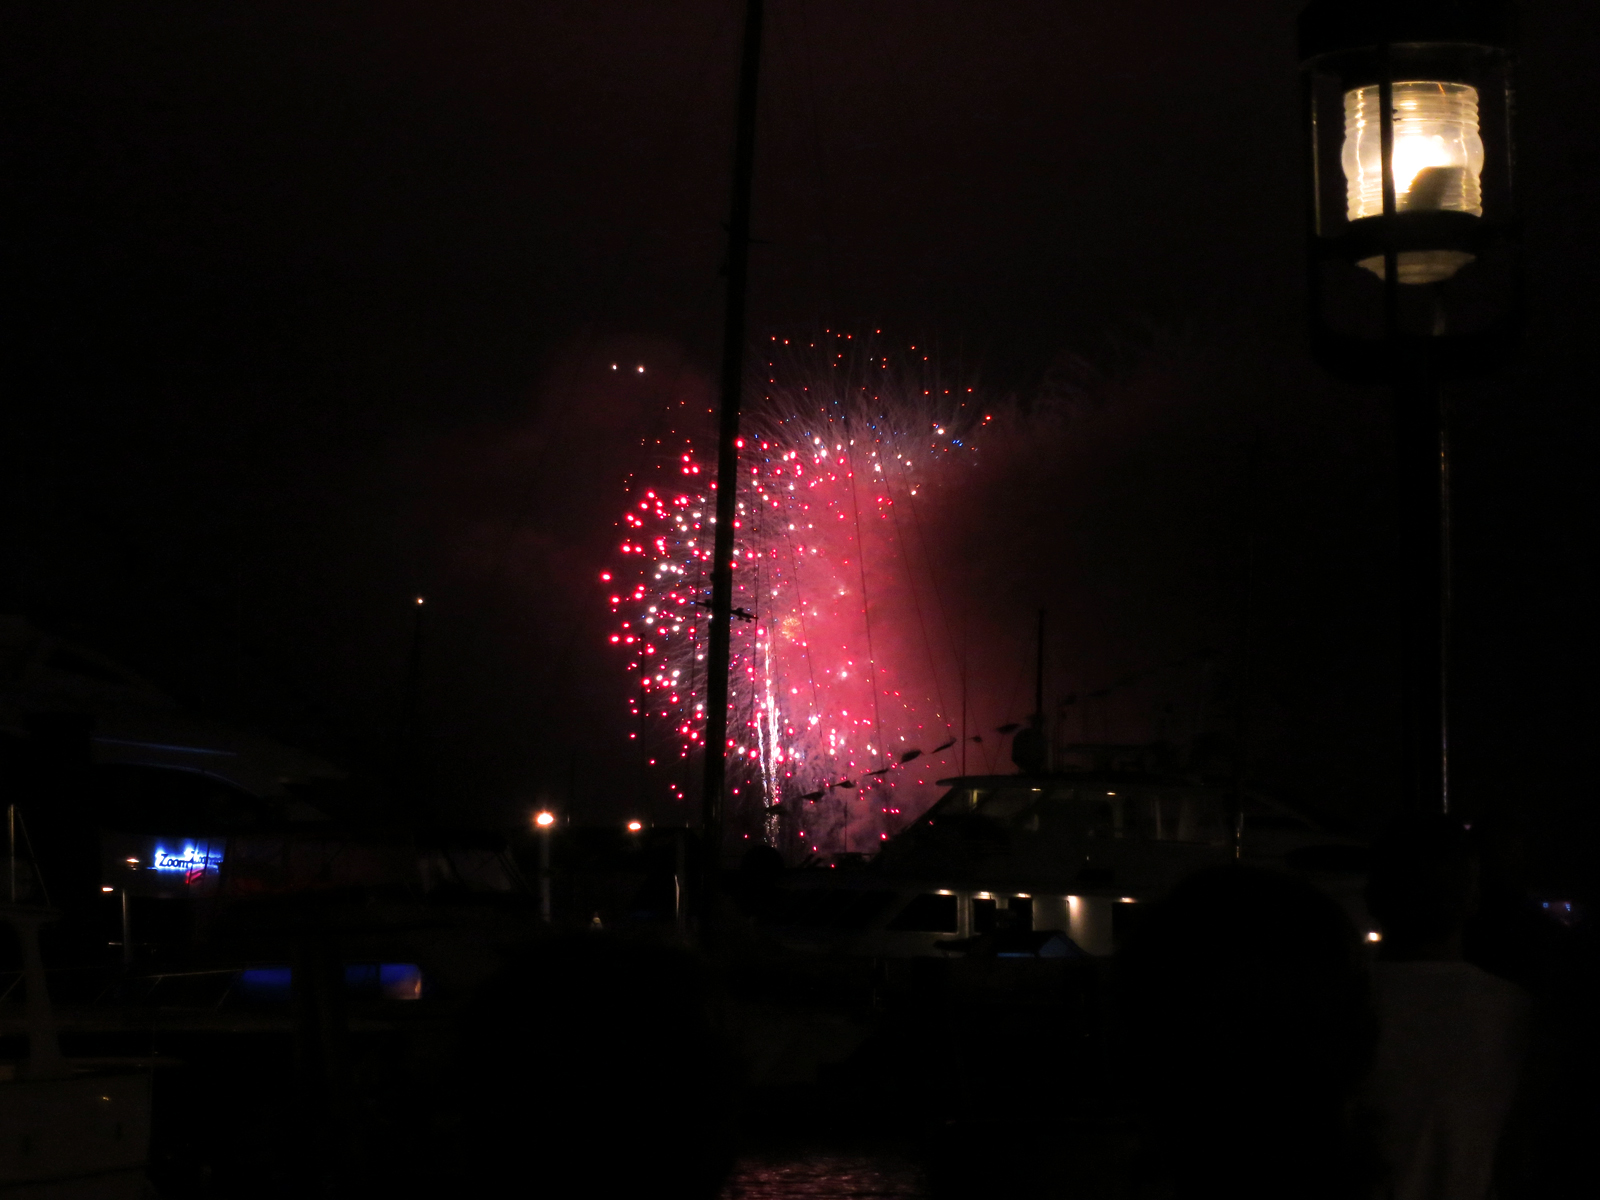 ROCKET'S RED GLARE OVER NEWPORT HARBOR - live. travel. adventure. bless. | The spectacular finale of the Newport Harbor Fireworks display in Newport, RI with red, white and blue fireworks. Happy 4th of July!